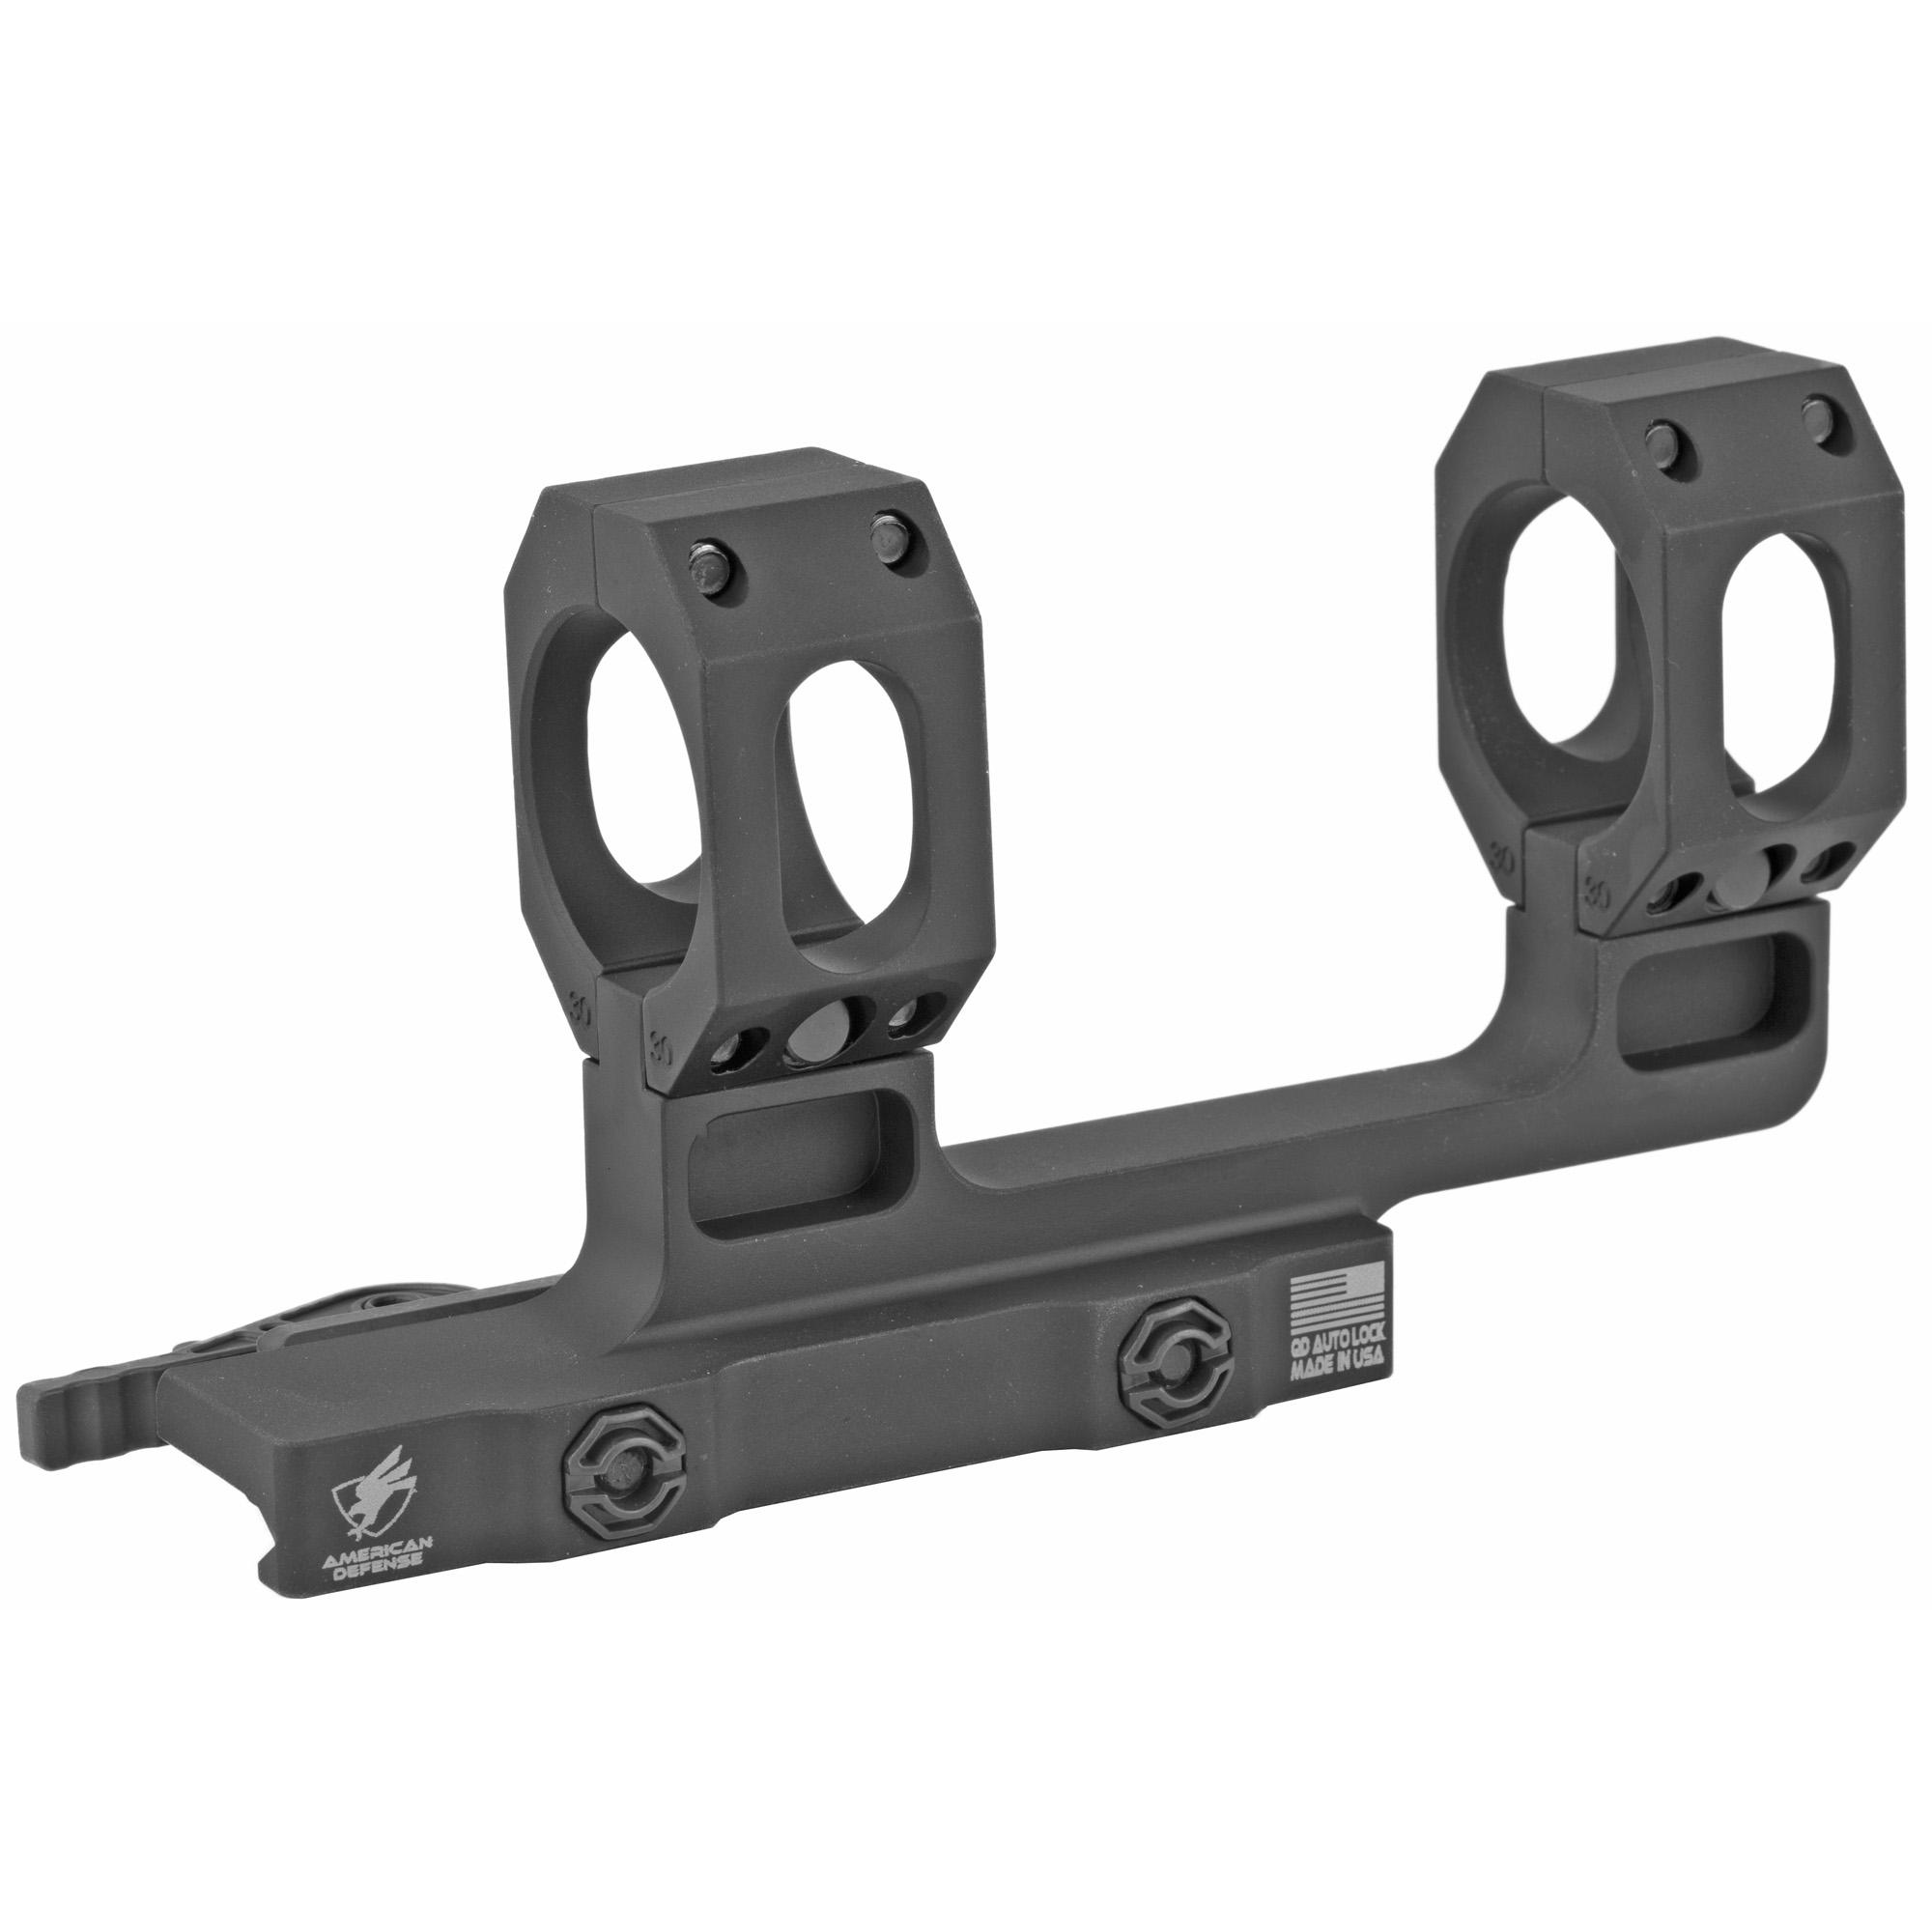 American Defense Mfg. American Defense Mfg. Recon-h Mount 30mm Dual Quick Release Ti